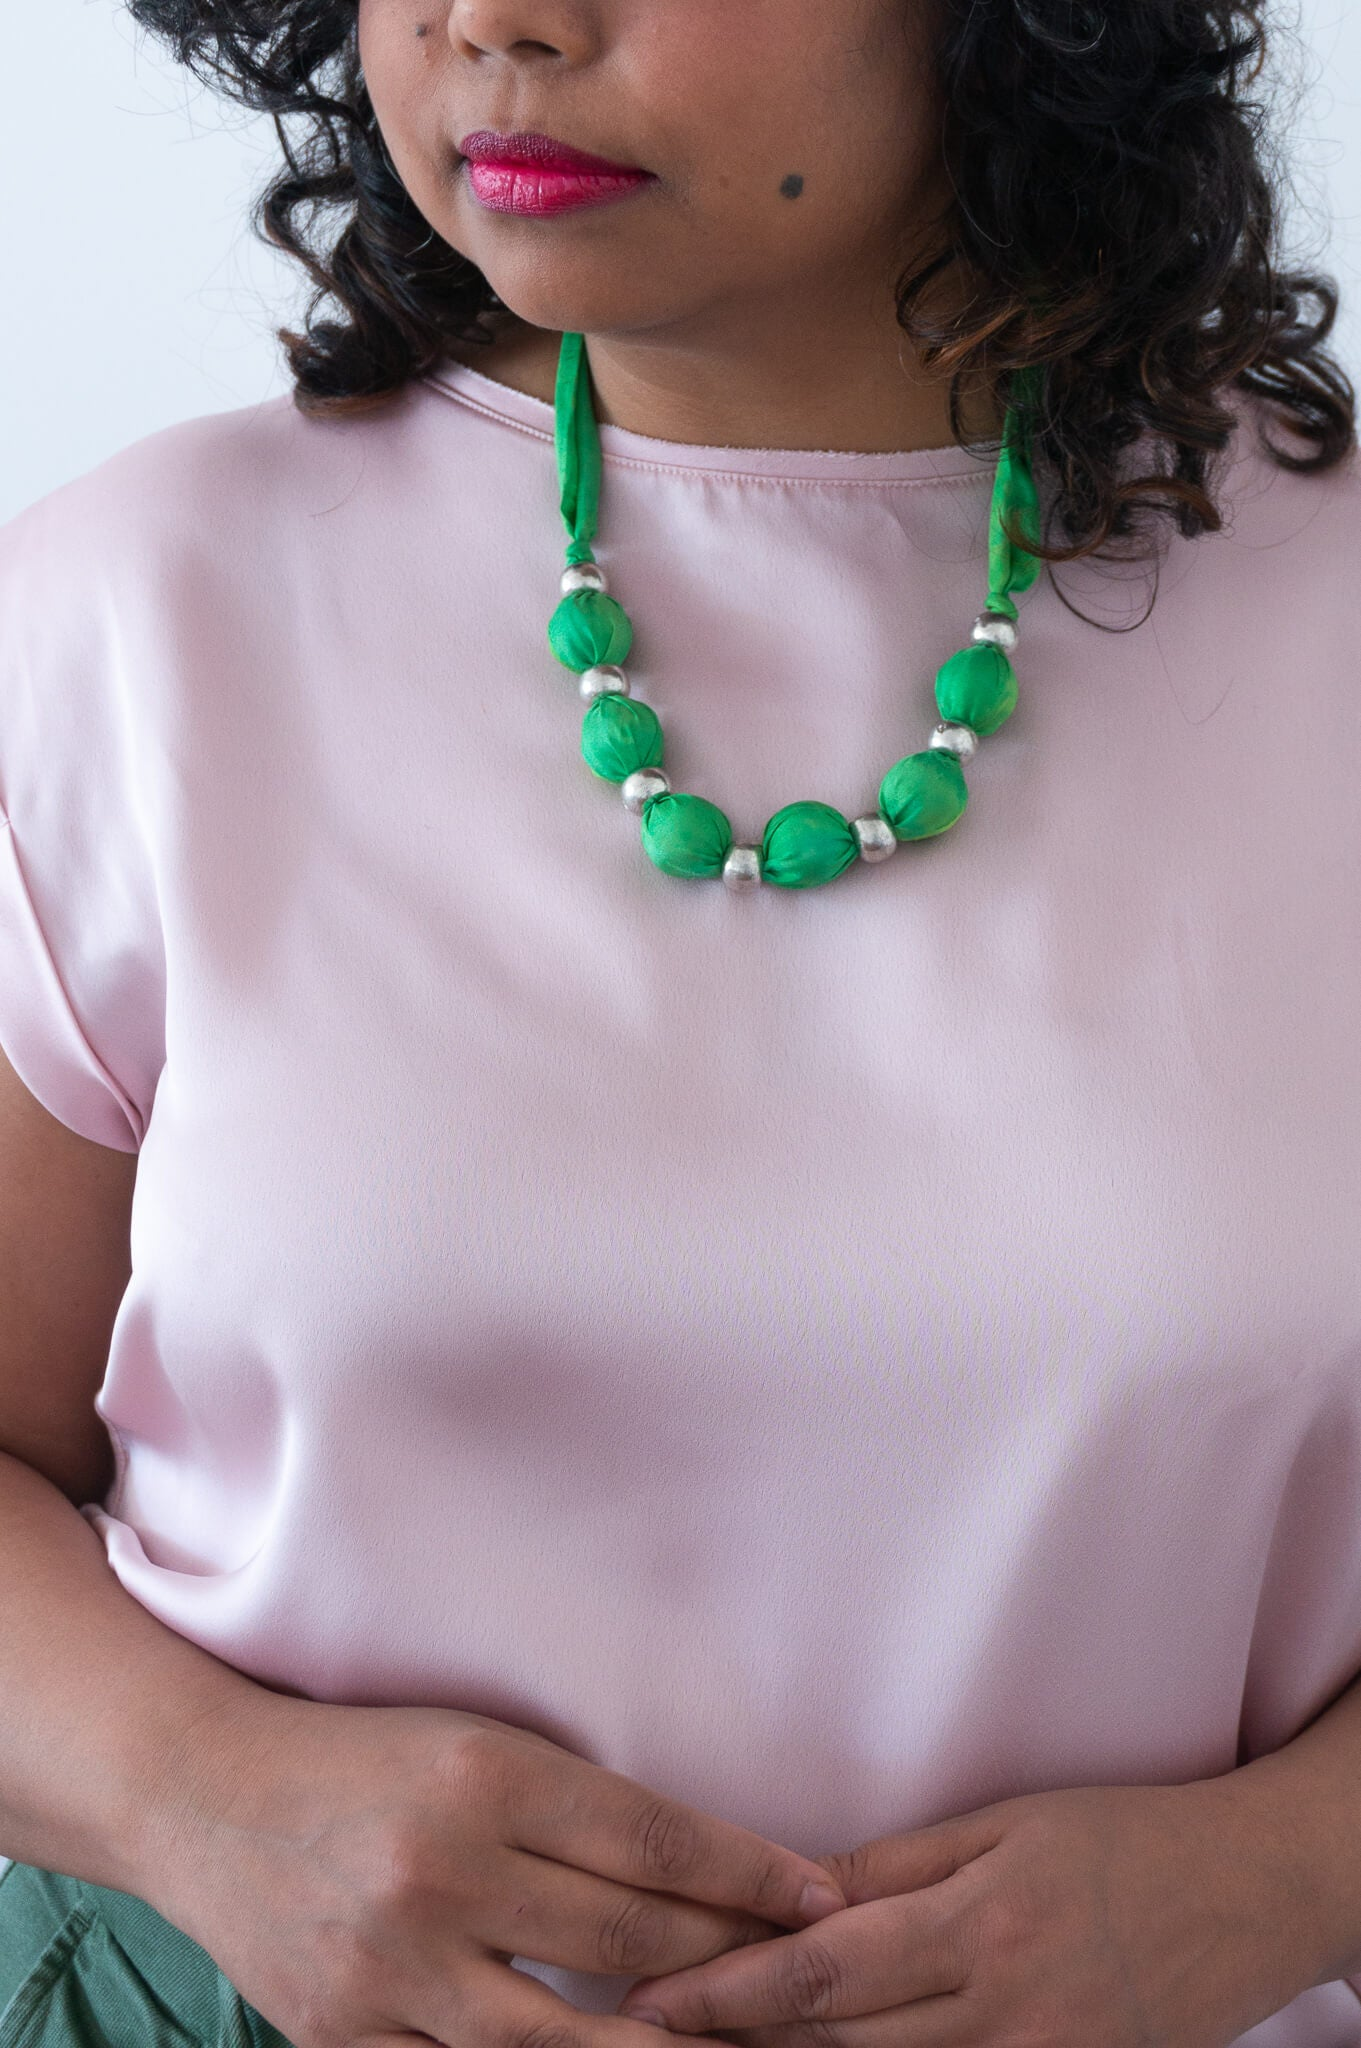 Greenery necklace